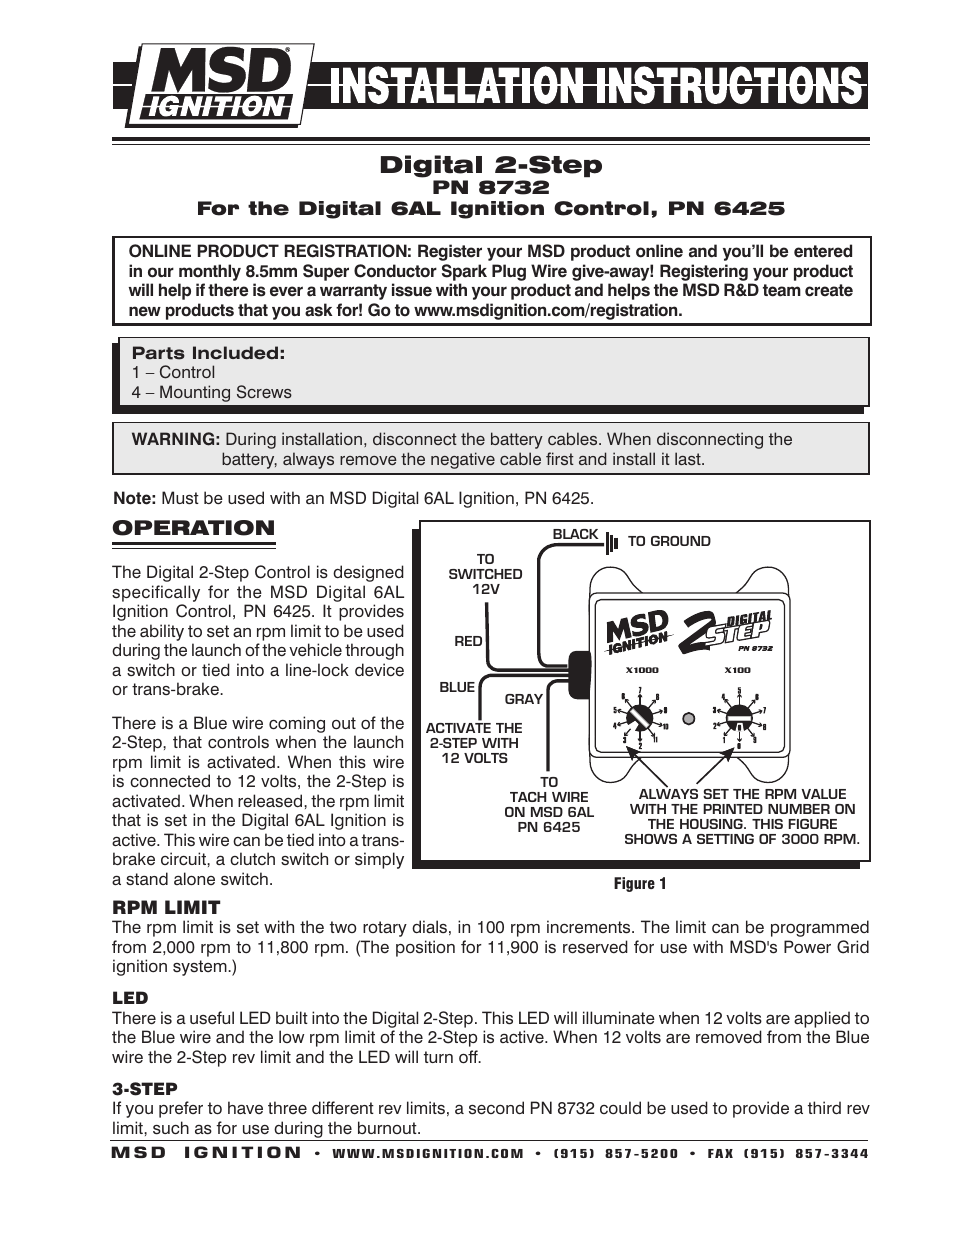 msd 8732 2 step rev control for digital 6al installation page1?resize=665%2C861 msd 6al 6425 wiring diagram msd wiring diagrams instruction msd digital 6al wiring diagram at readyjetset.co